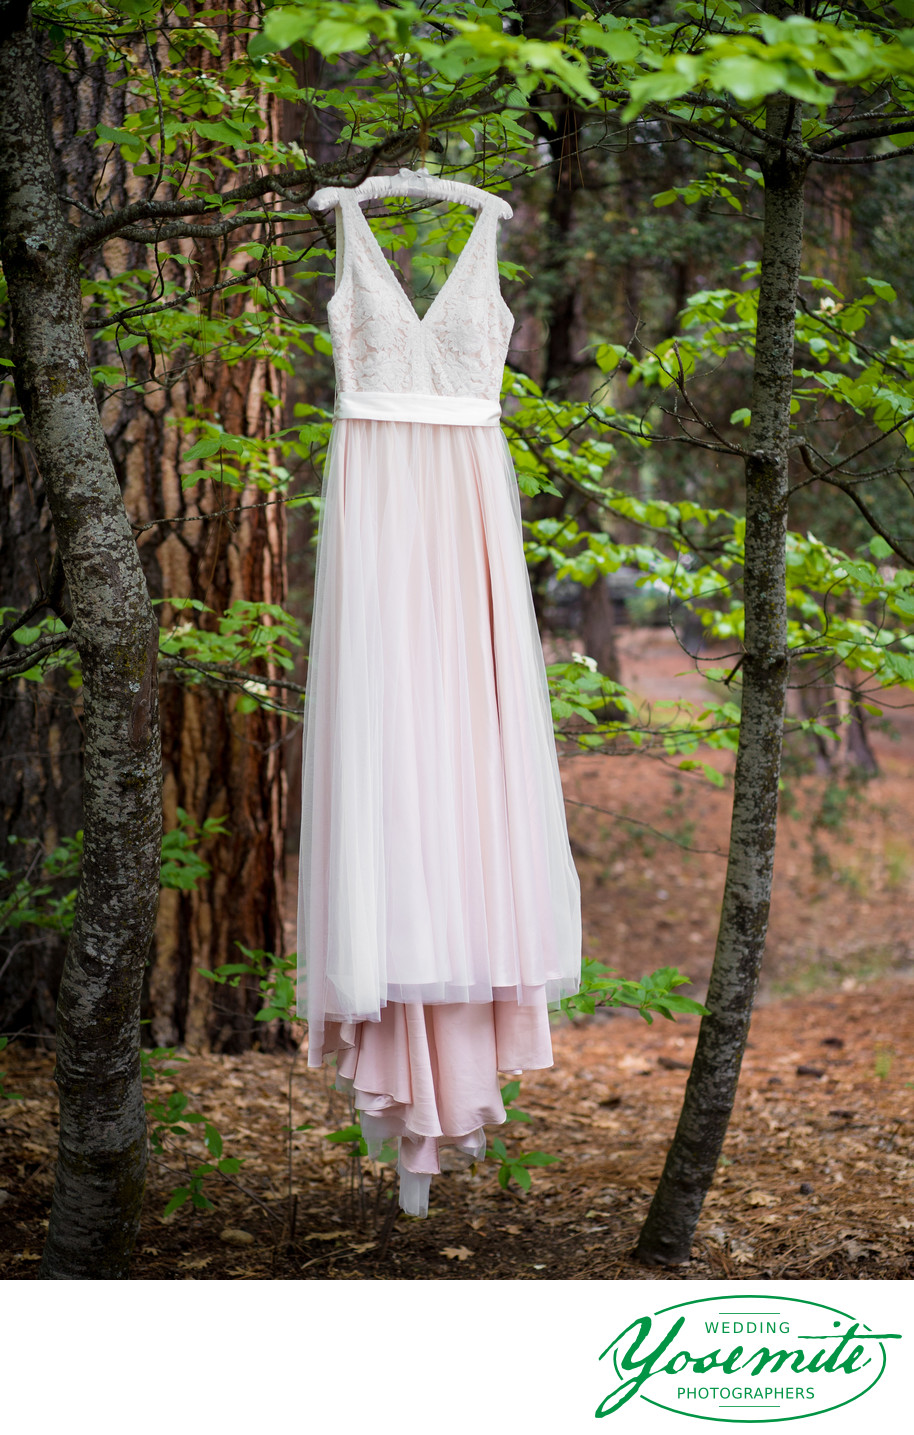 Bride's Pink Dress Hangs From Tree in Yosemite